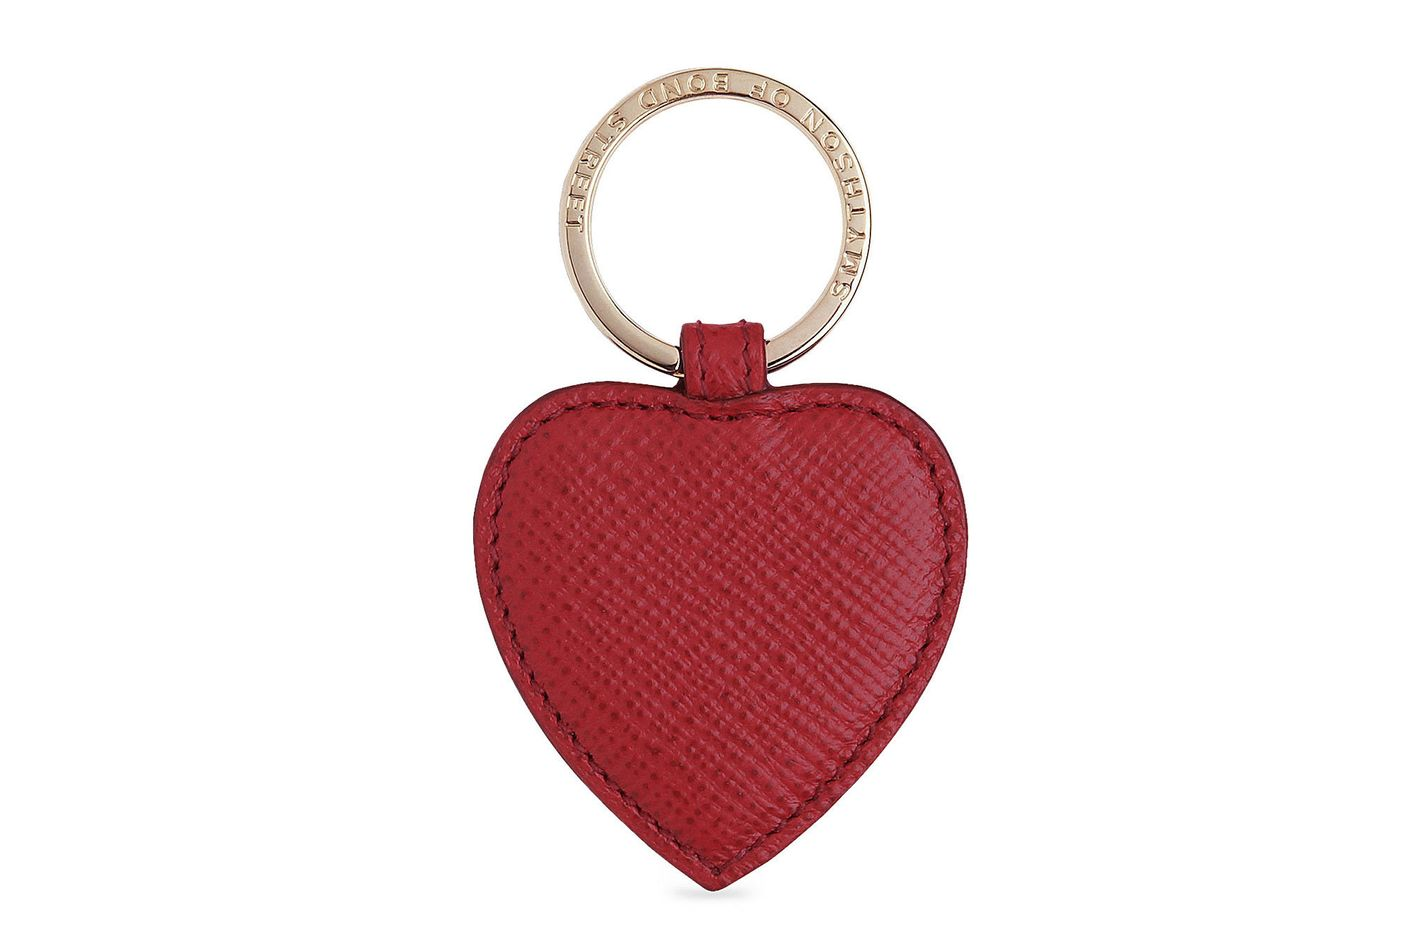 Smythson Heart Leather Keychain